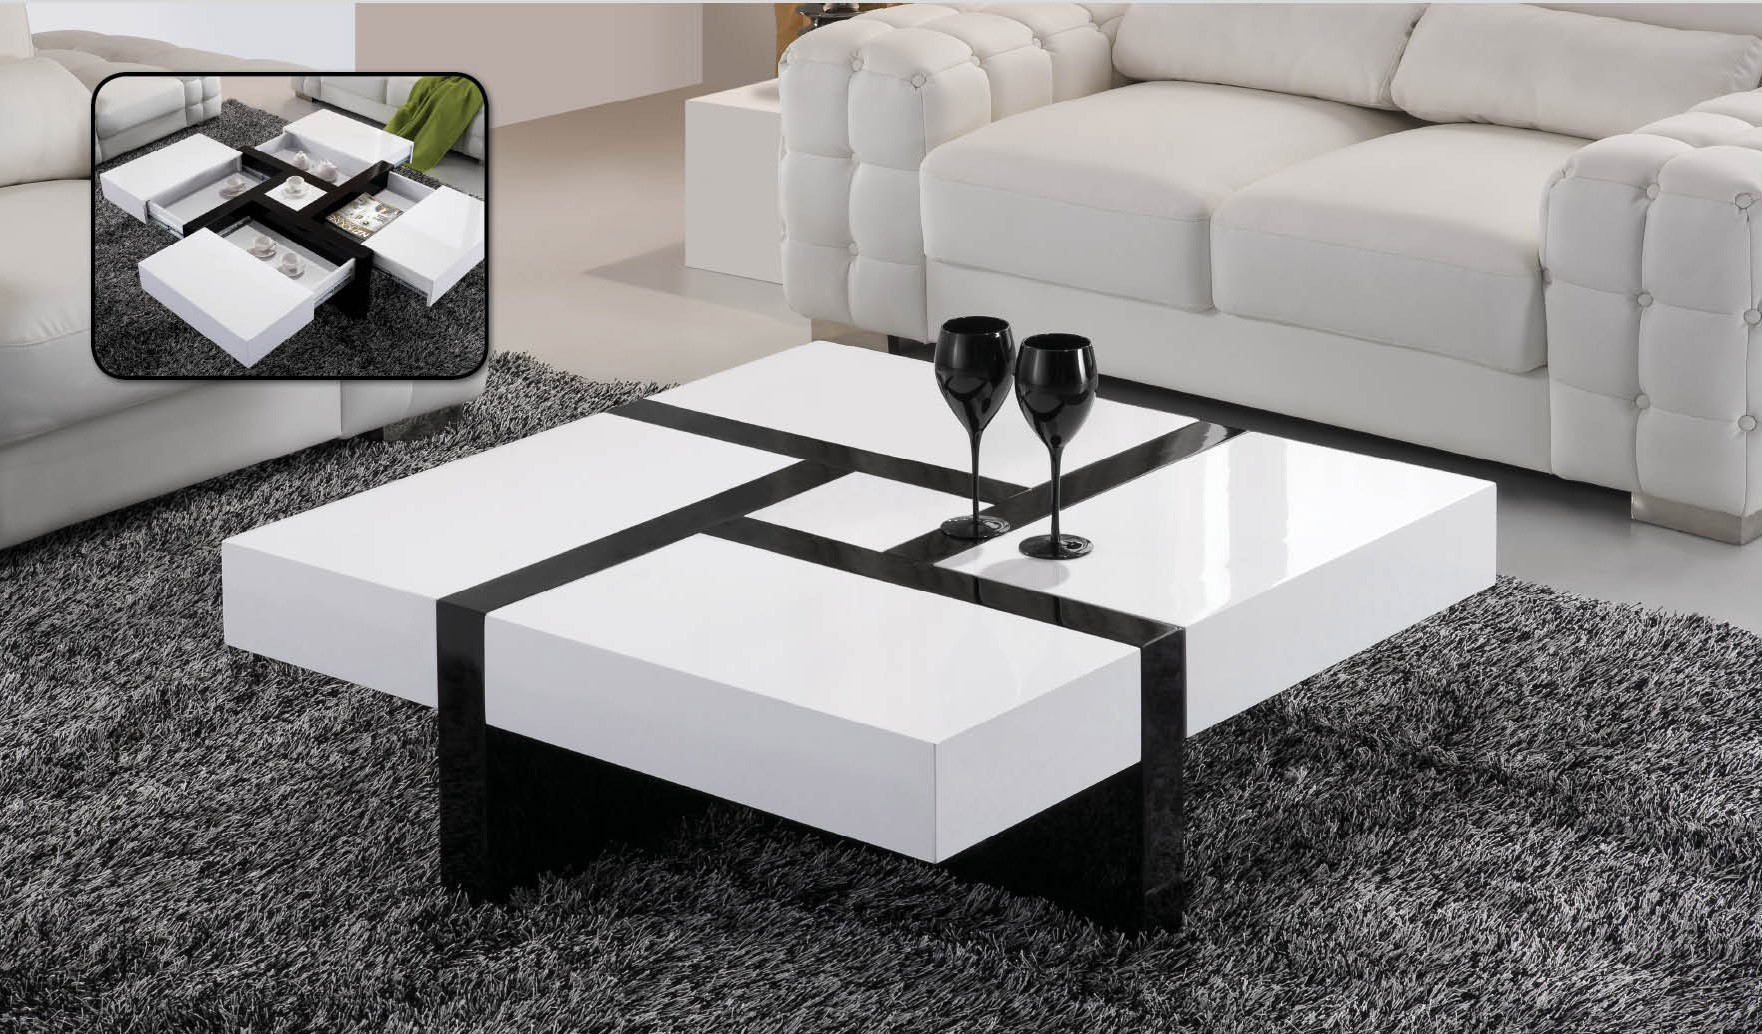 table basse de salon 7 id es de d coration int rieure french decor. Black Bedroom Furniture Sets. Home Design Ideas